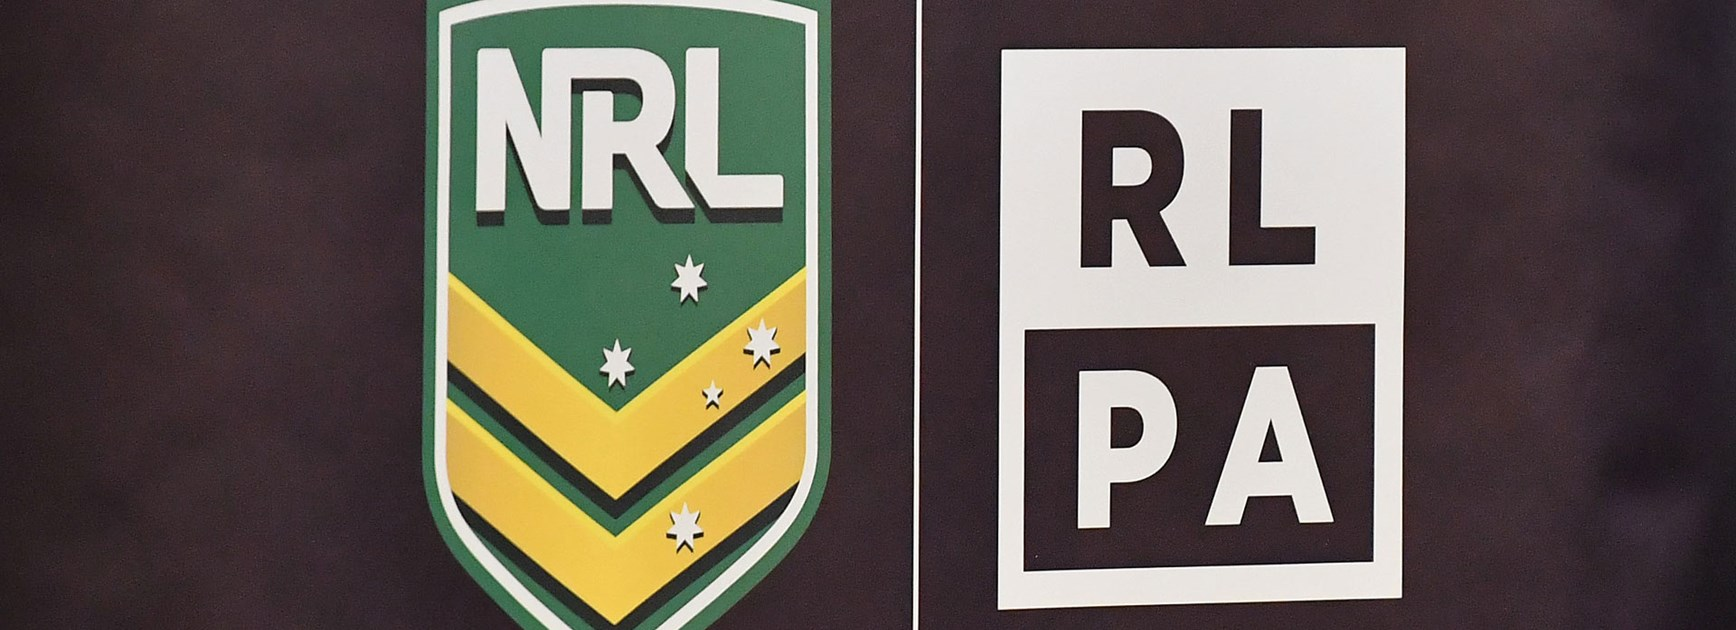 2019 NRL RLPA Wellbeing and Education Conference